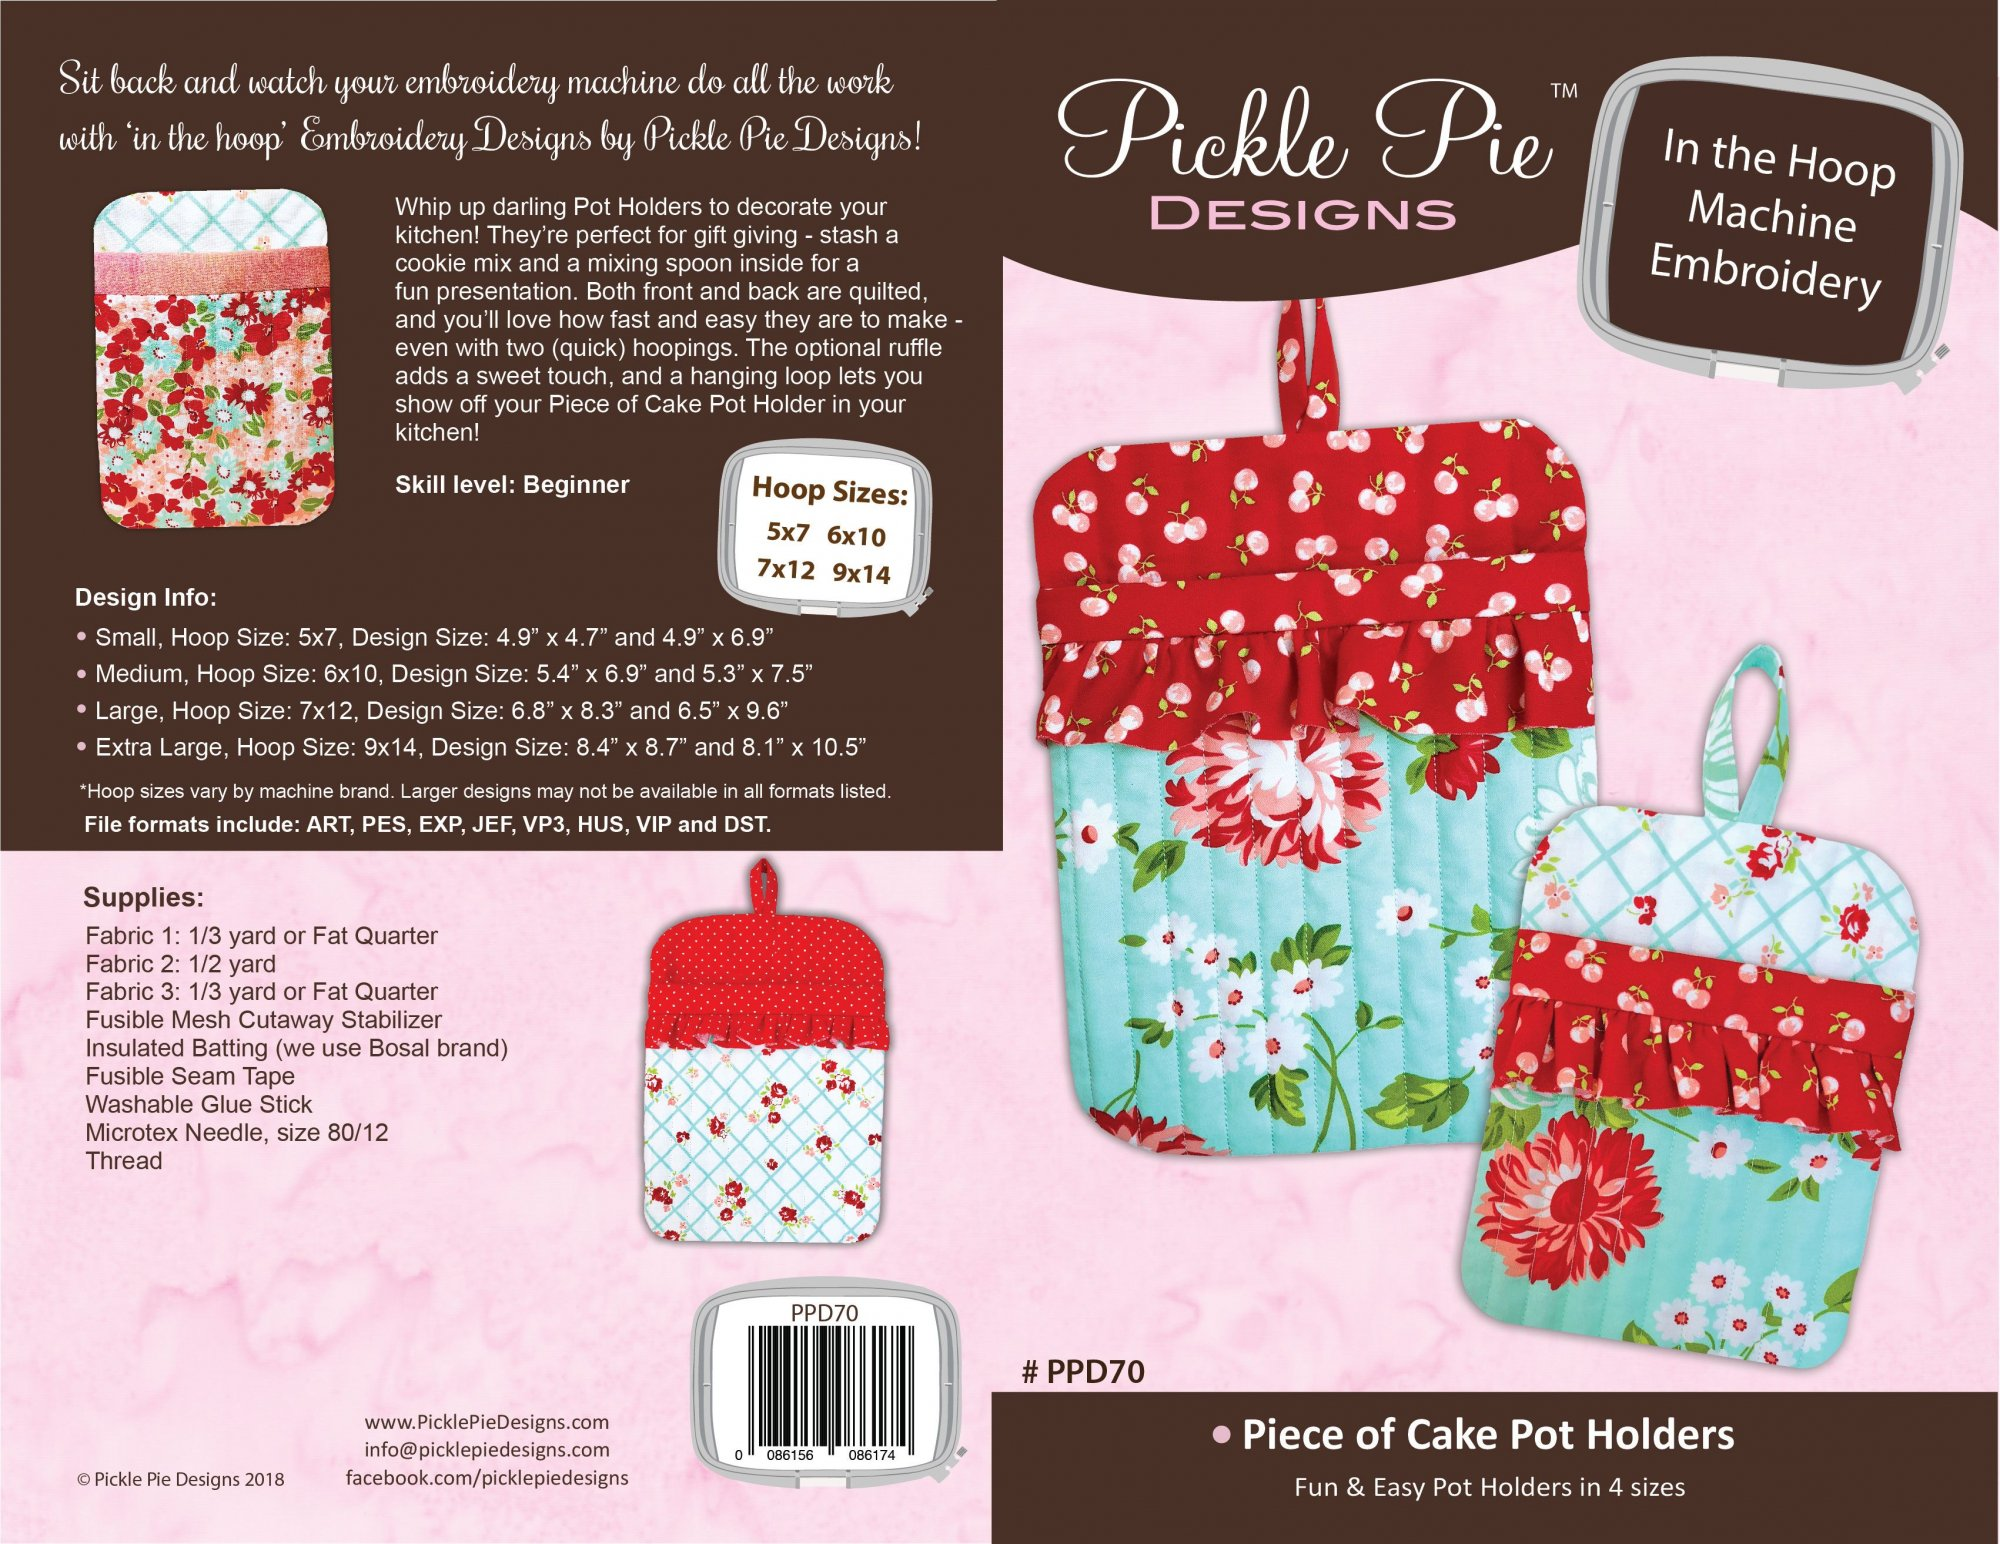 Piece of Cake Pot Holders ITH Embroidery Design collection CD - copy